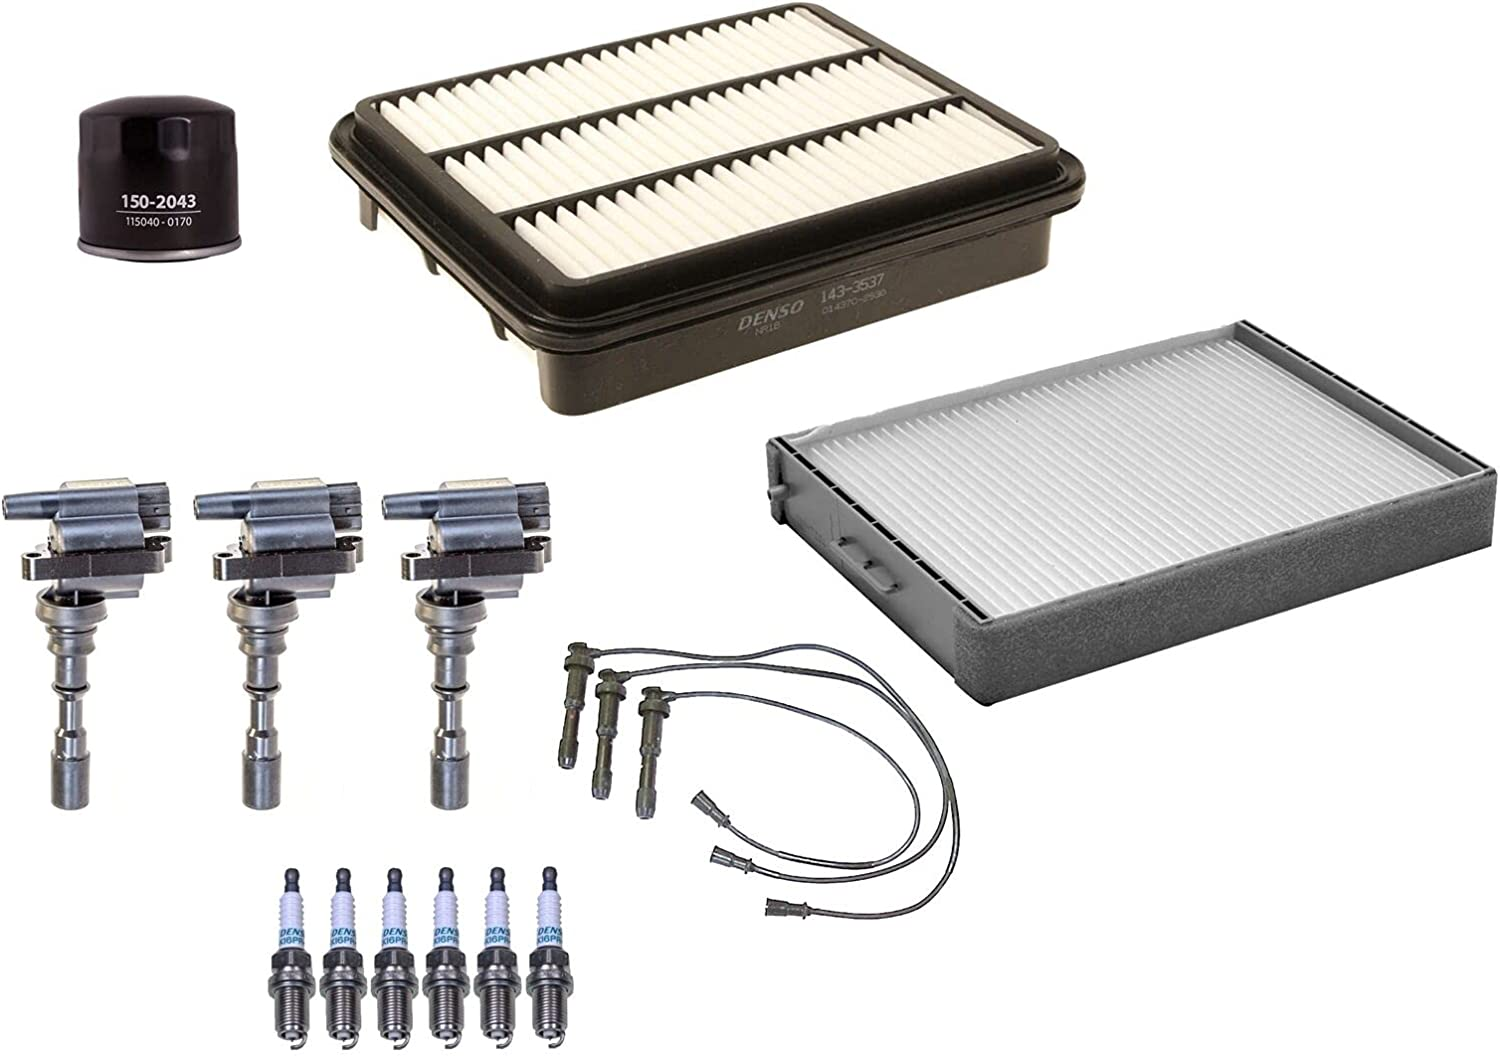 Filters Wires 3 Ignition Coils 6 Up Spark half Compa kit Plugs Max 77% OFF Tune